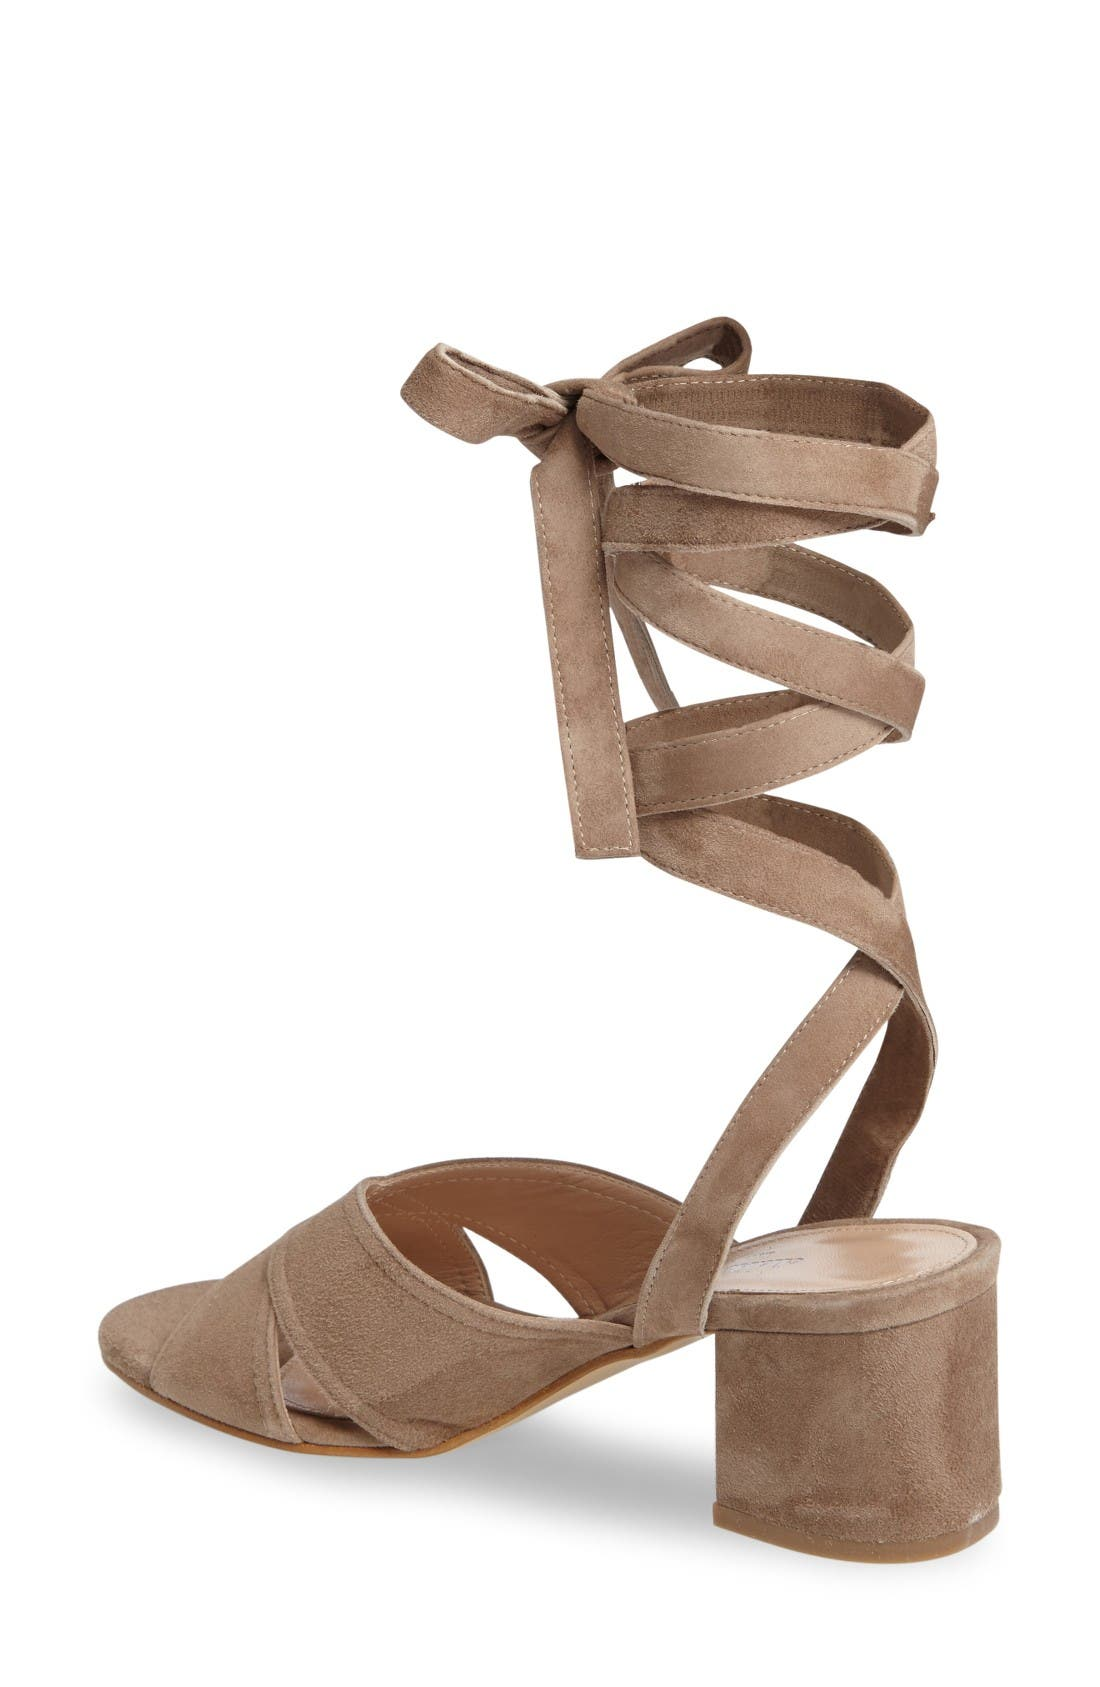 Blossom Wraparound Sandal,                             Alternate thumbnail 2, color,                             Truffle Suede